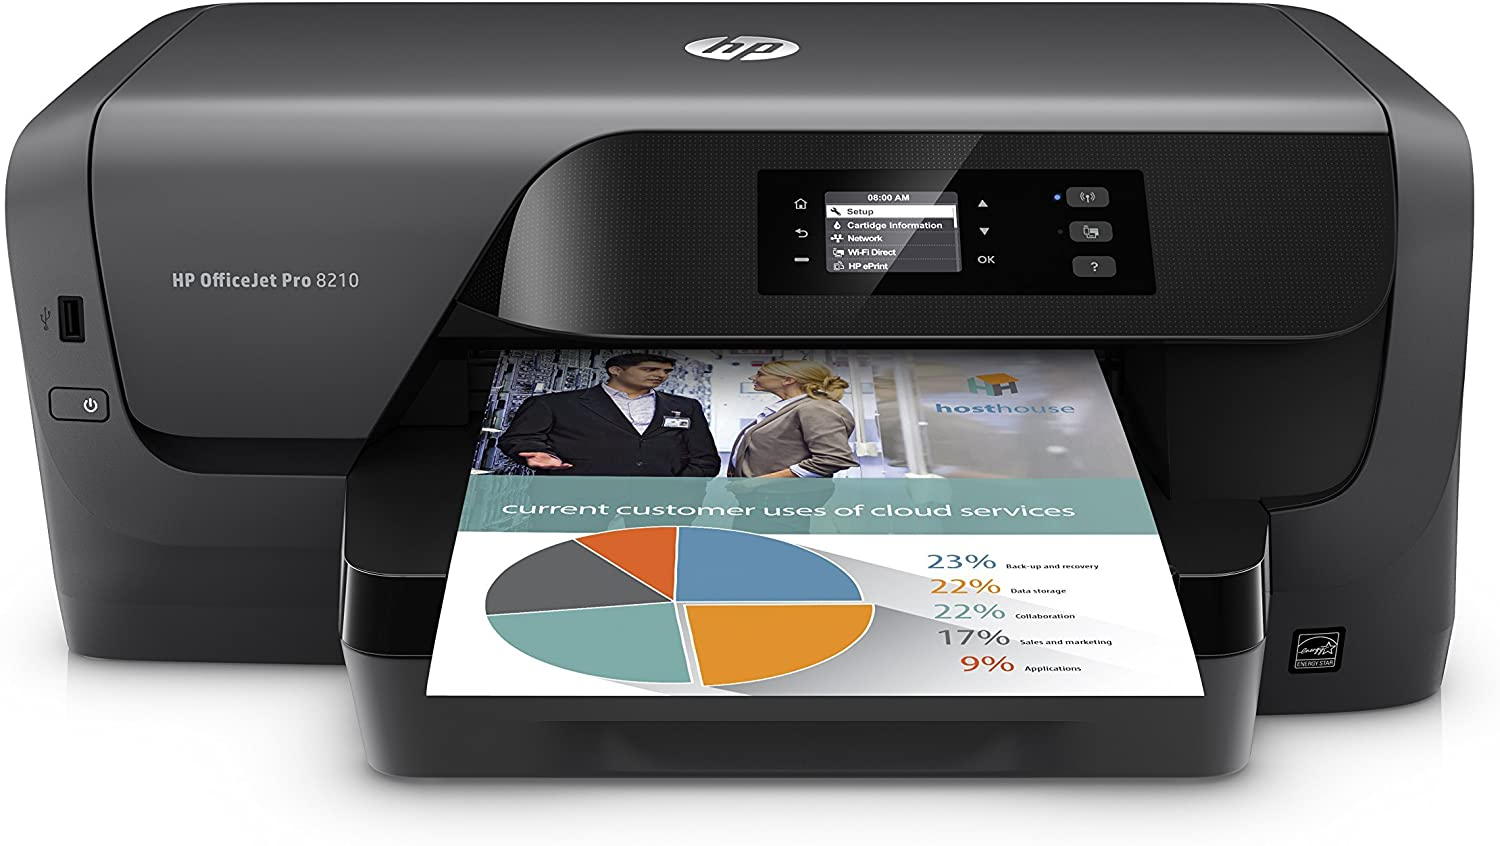 HP OfficeJet Pro 8210 Wireless Color Printer with Mobile Printing